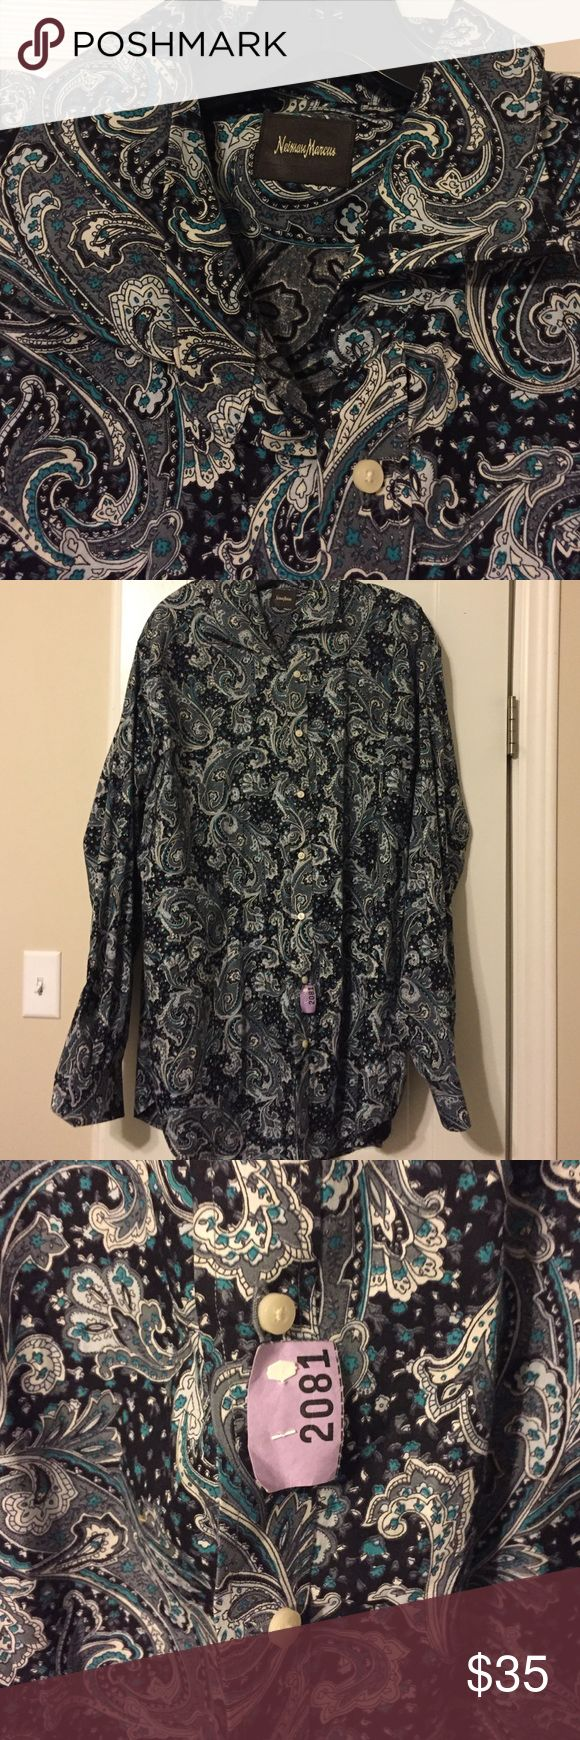 Neiman Marcus dress shirt xxl paisley Cute Neiman Marcus dress shirt that does not fit my husband any more as you can see it has been dry cleaned it is cotton and has colors of gray teal and black and white in excellent condition ask any questions! Neiman Marcus Shirts Dress Shirts